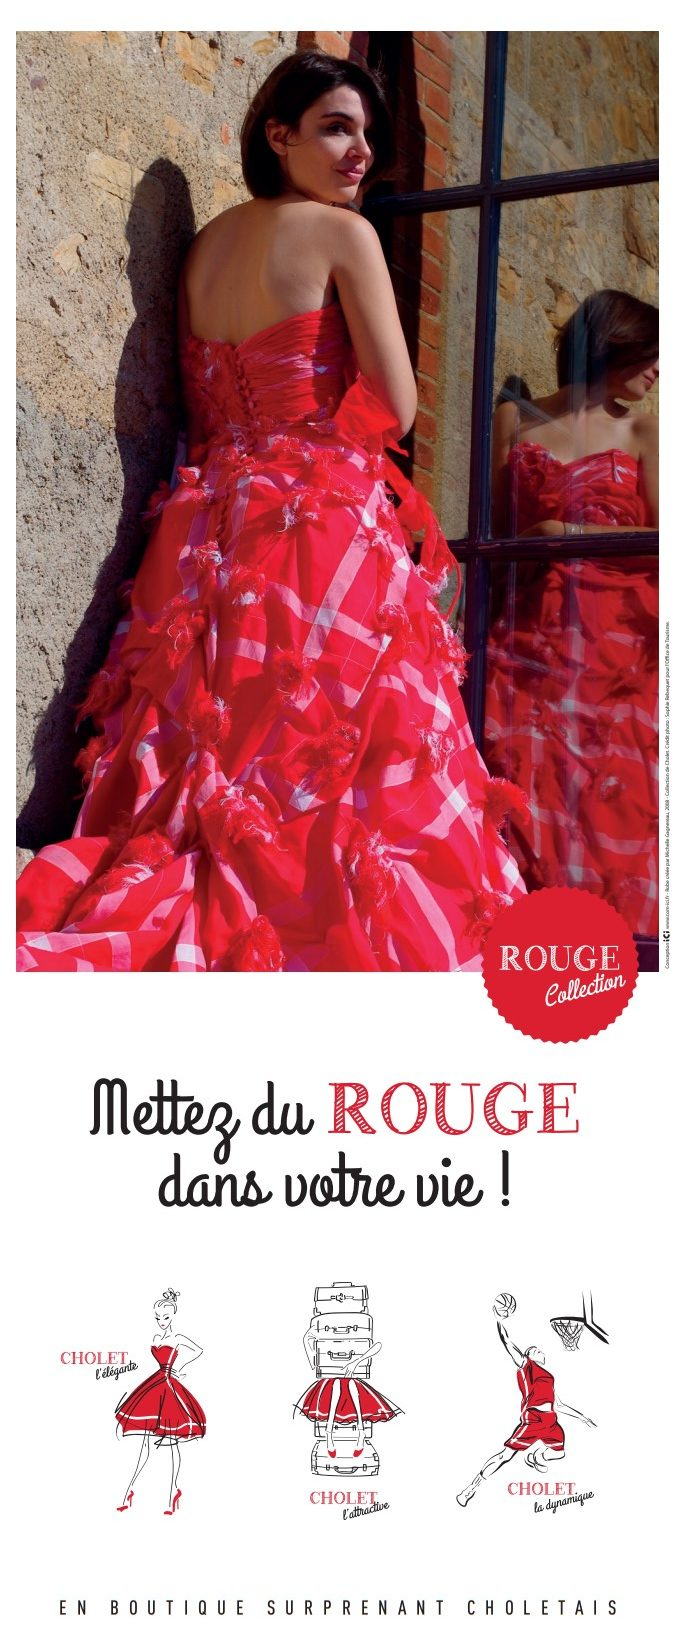 la rouge collection